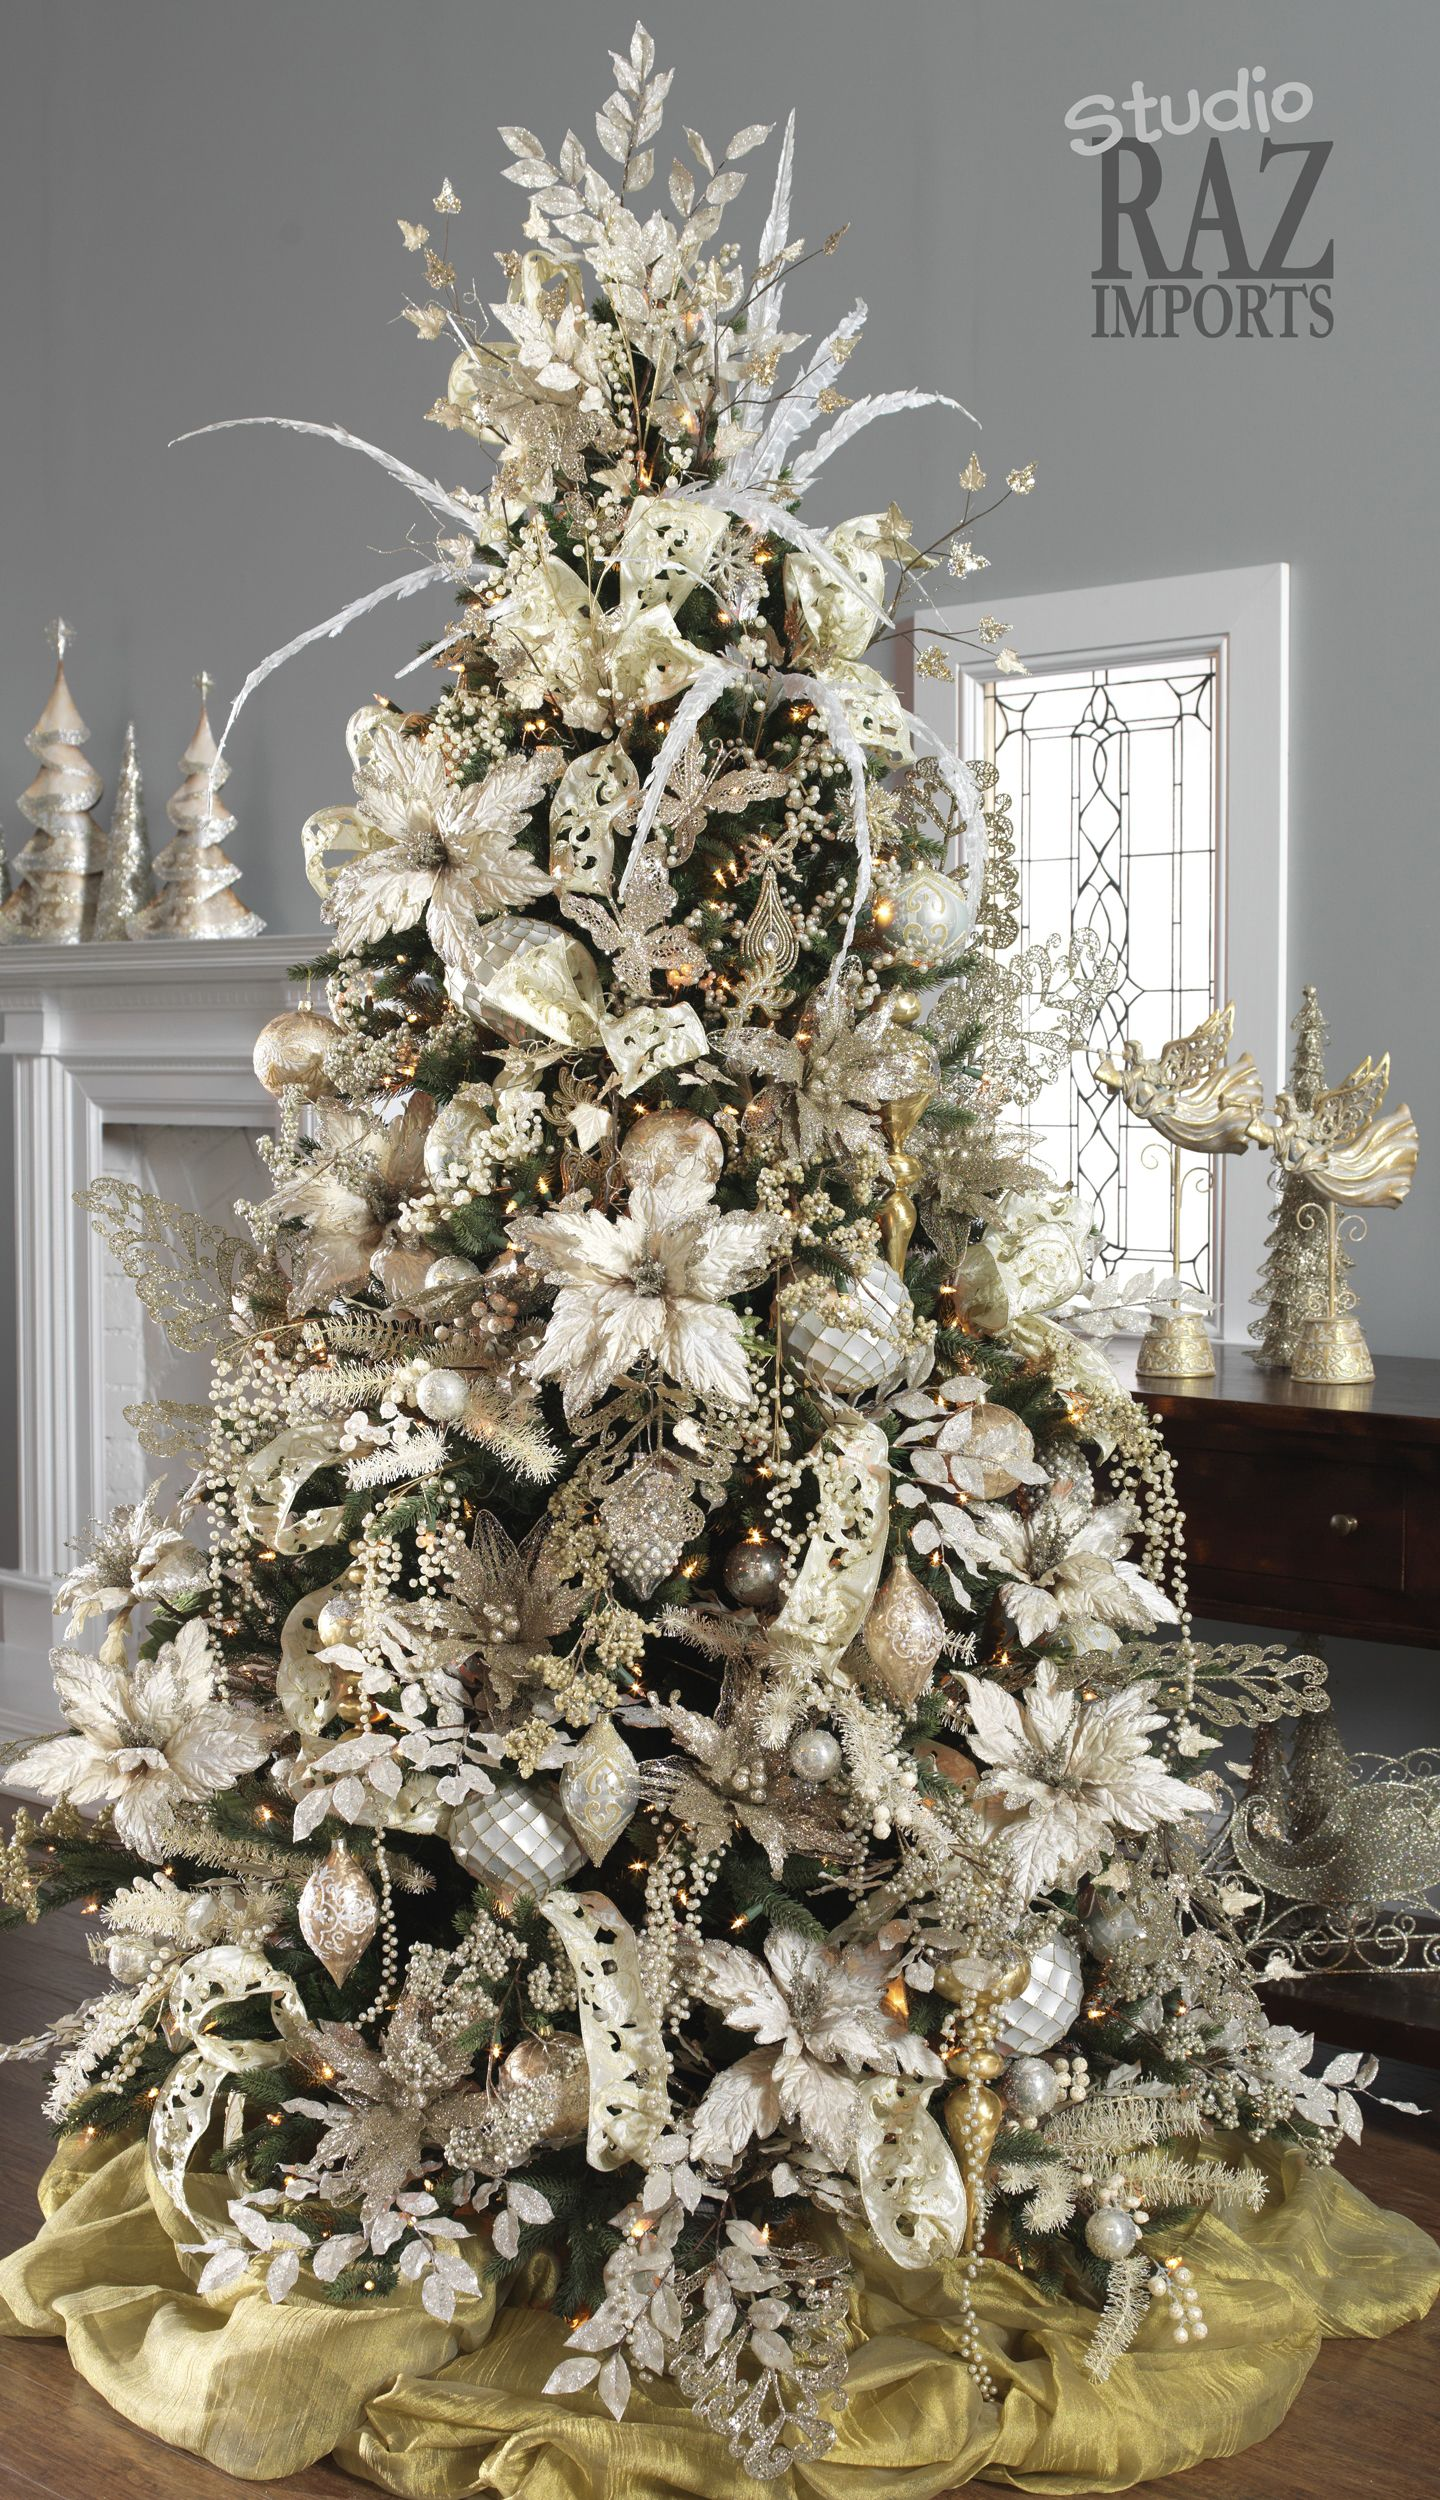 Charmant 37 Inspiring Christmas Decorating Ideas ~ Shown: White Christmas Tree Ala  Winter Wonderland | Decoholic